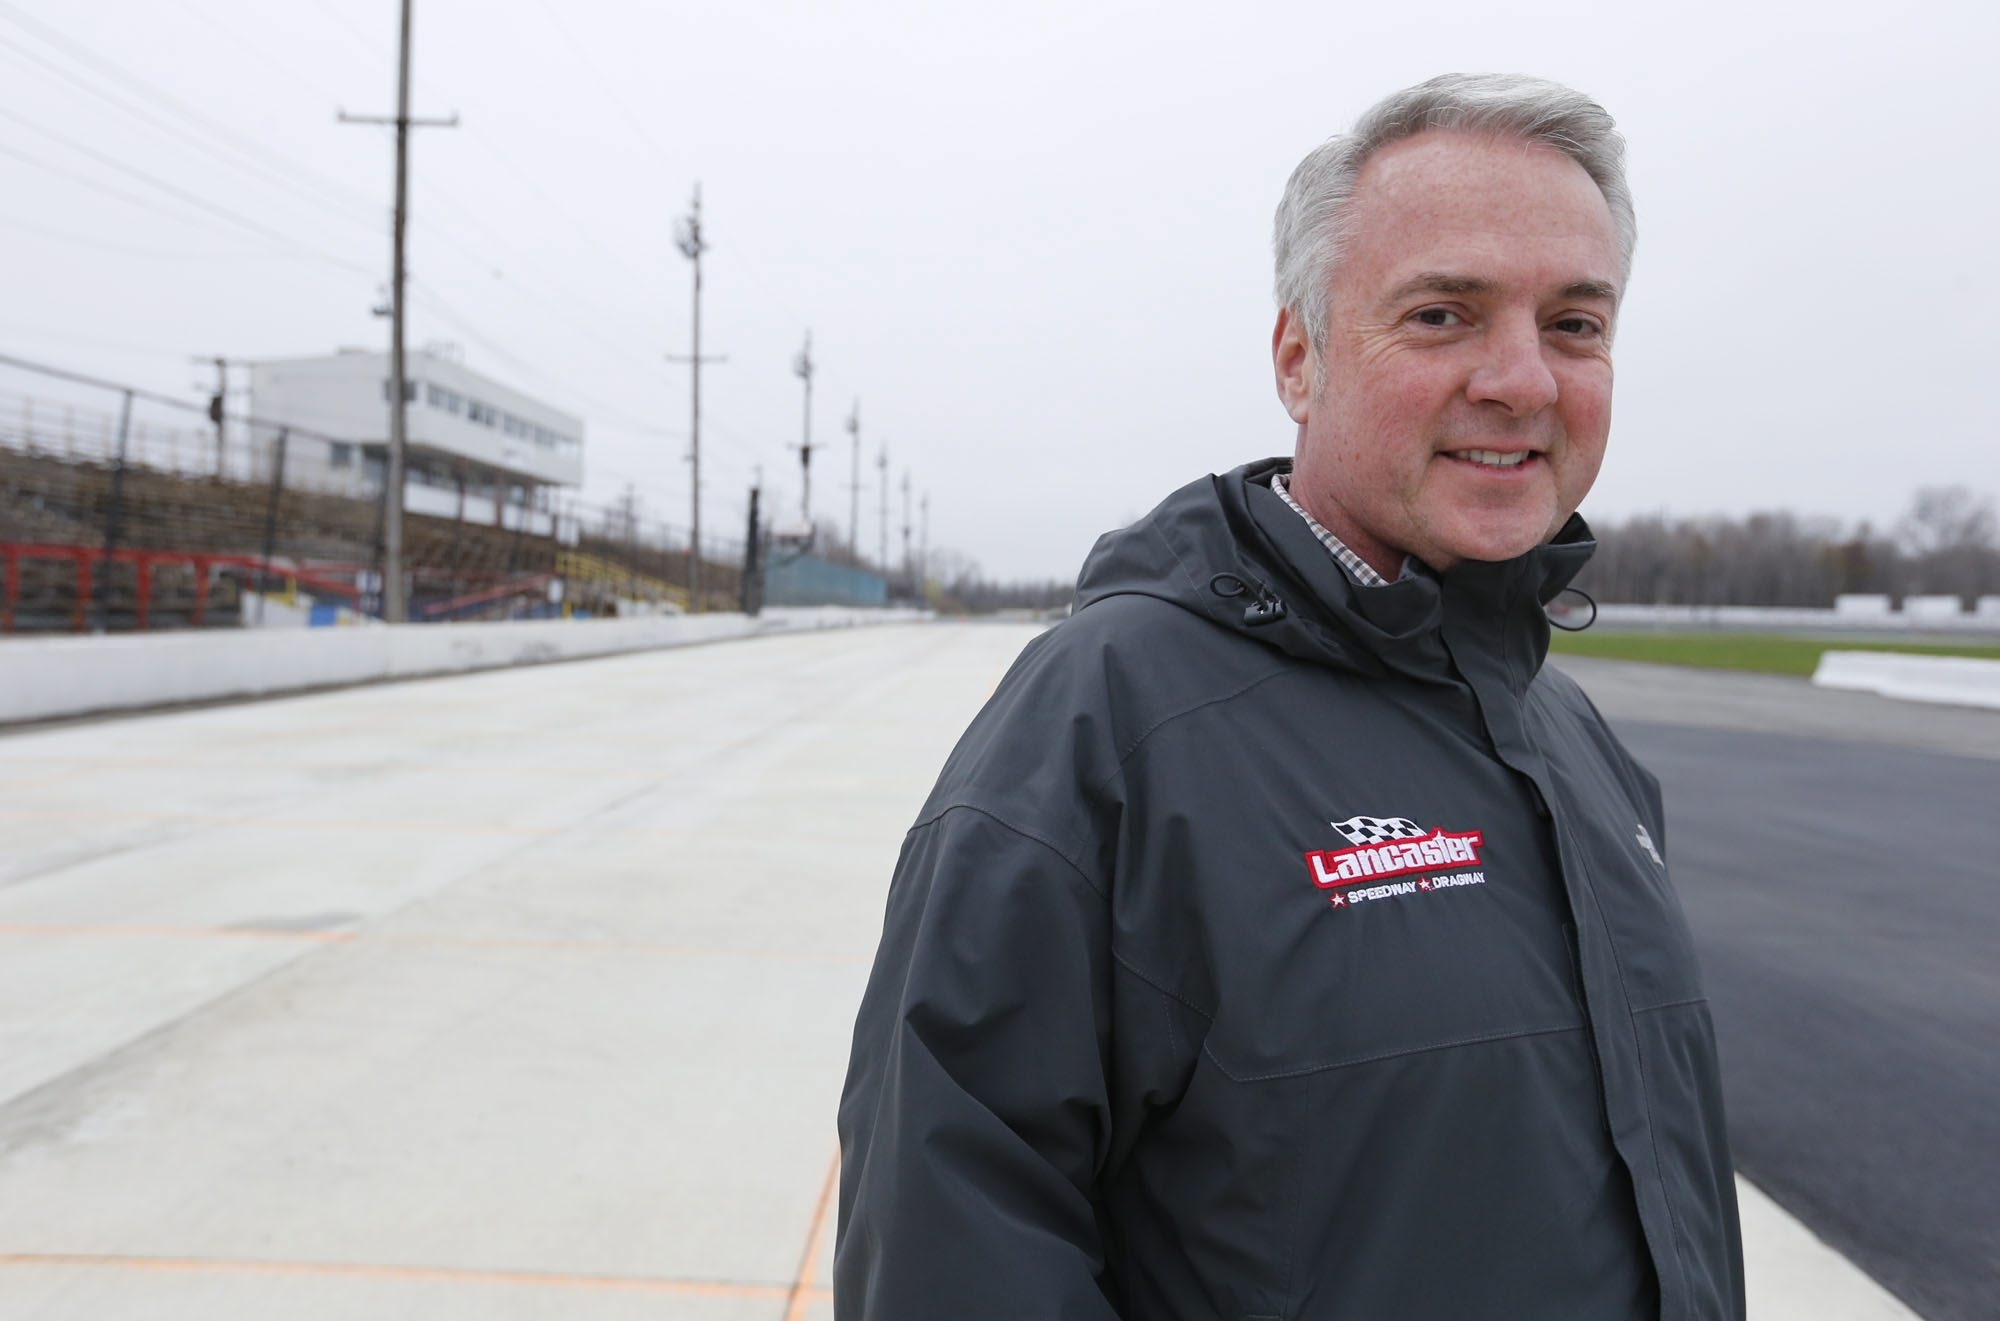 Tim Packman, president of Lancaster National, saw the track have a major spike in attendance this season. (Harry Scull Jr./Buffalo News)